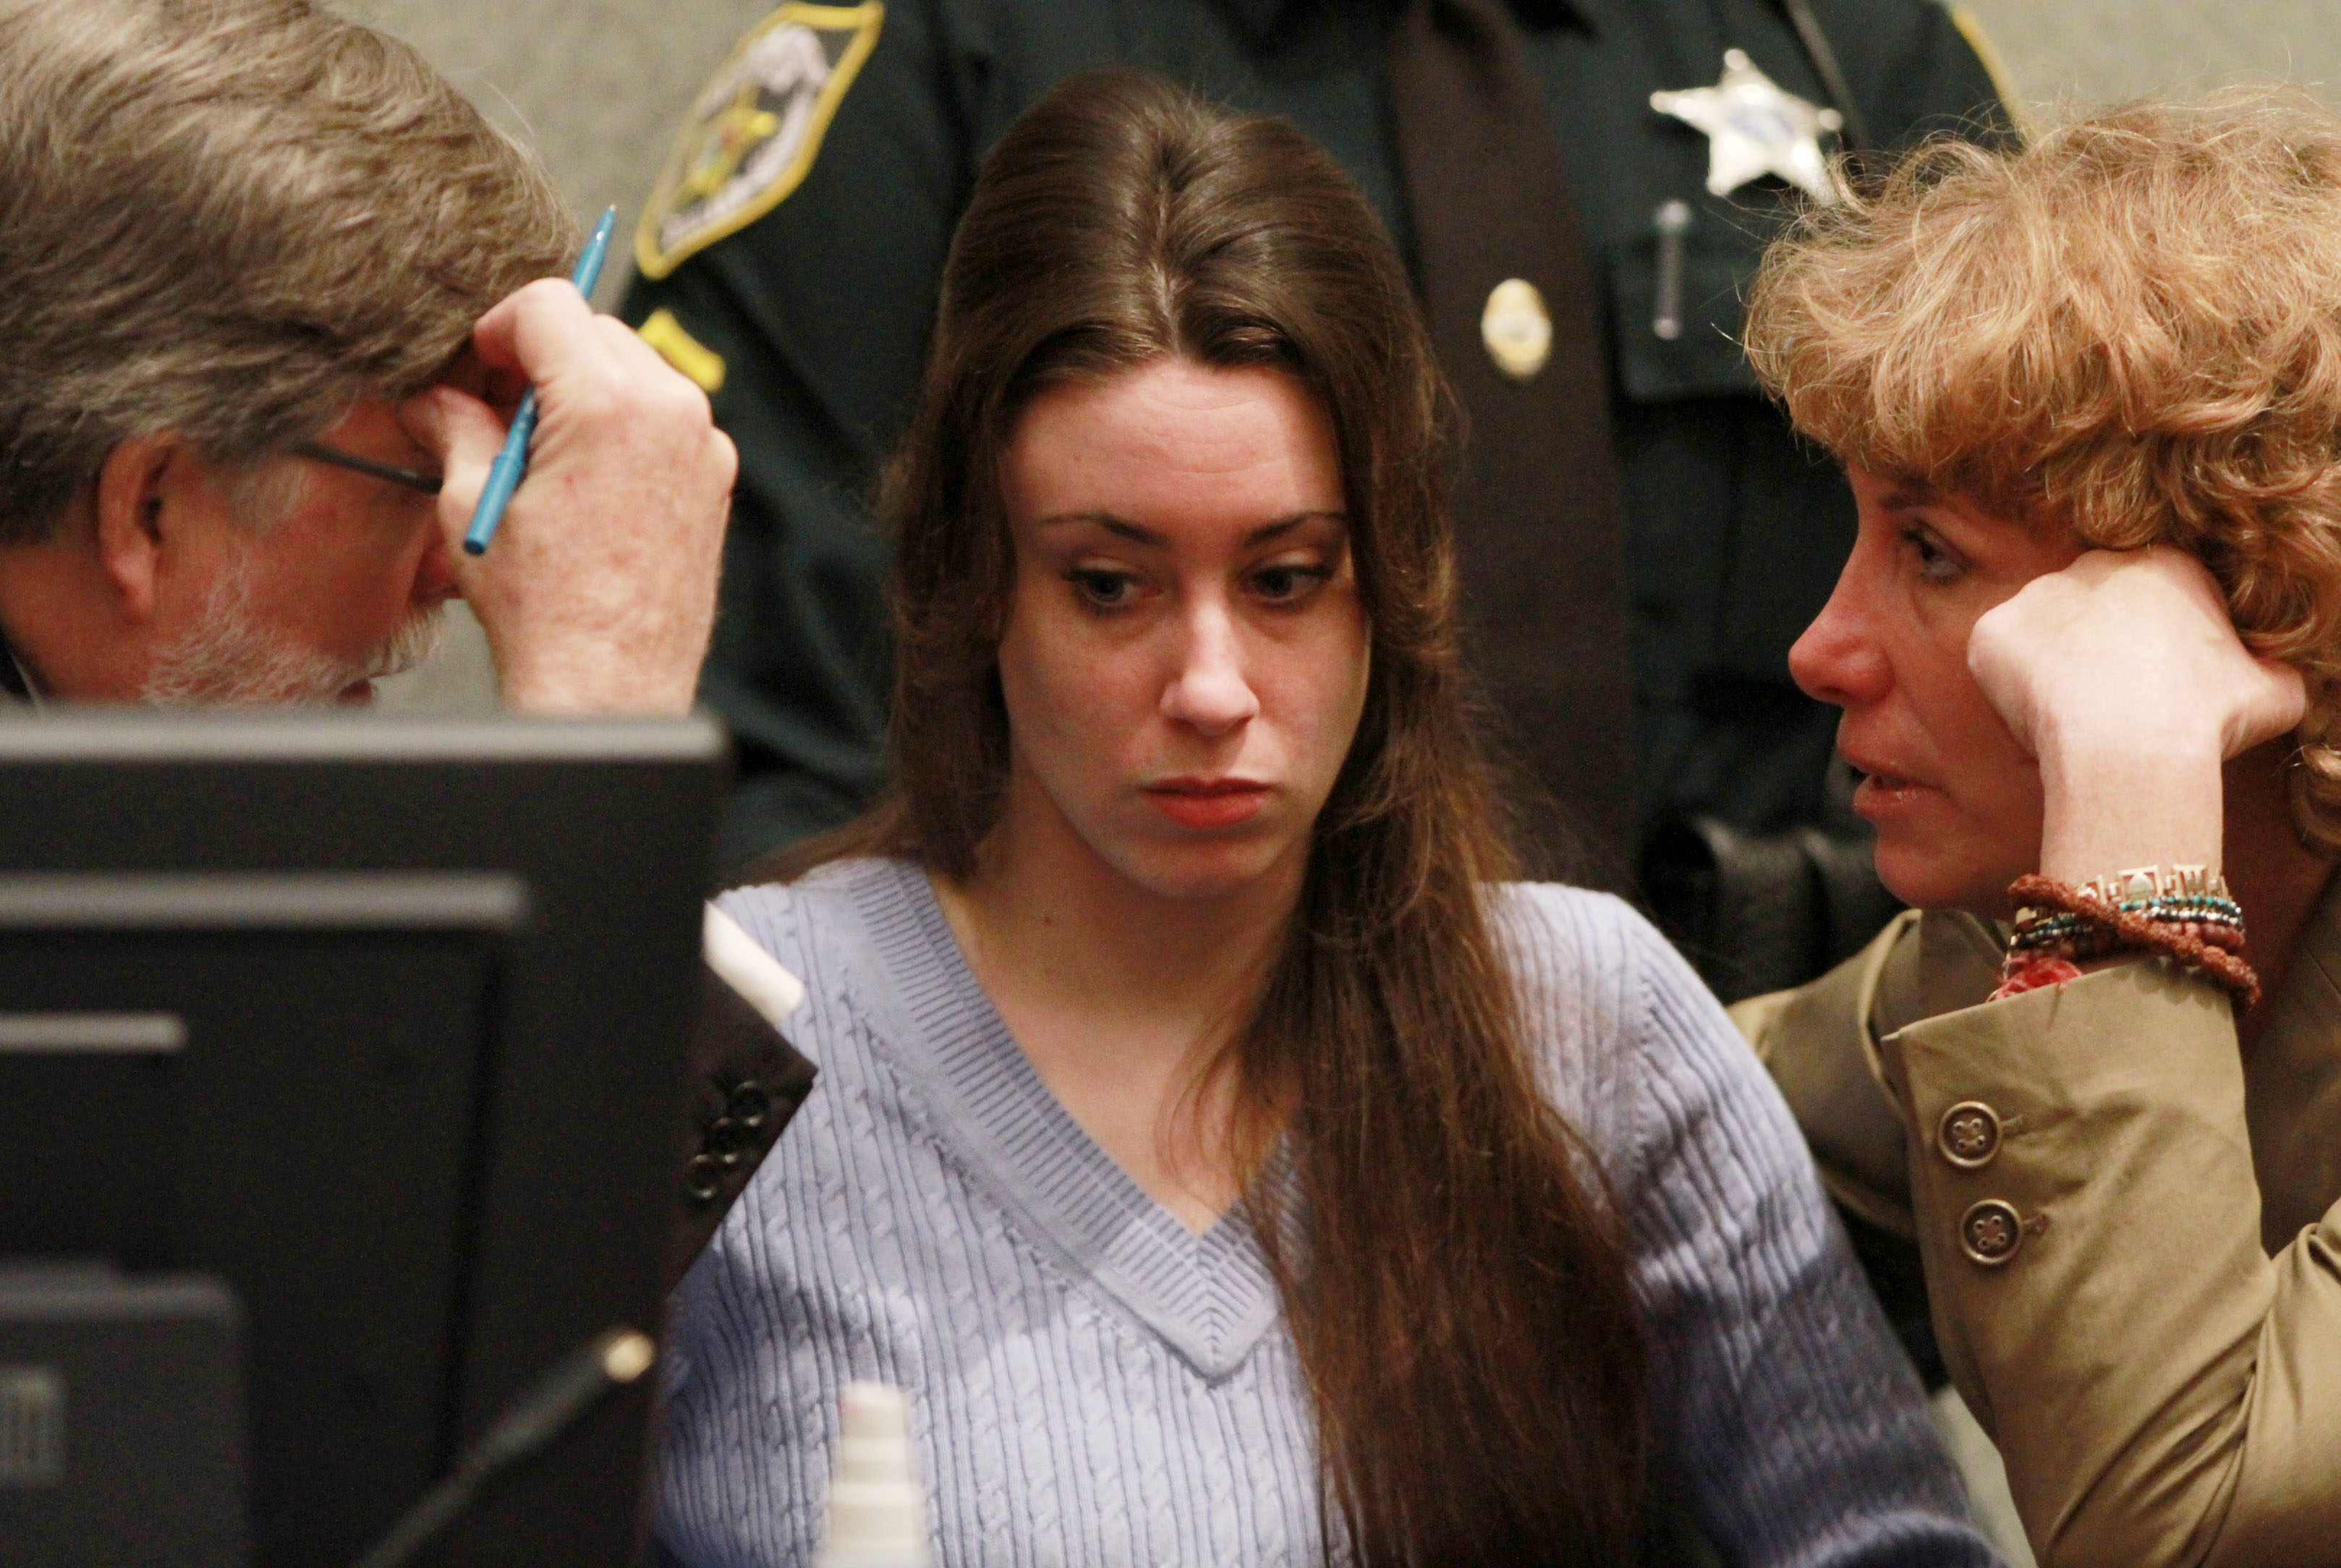 Casey Anthony (C) sits with her attorneys Cheney Mason (L) and Dorothy Clay Sims (R) before the start of her sentencing hearing on charges of lying to a law enforcement officer at the Orange County Courthouse July 7, 2011 in Orlando, Florida. (Getty)